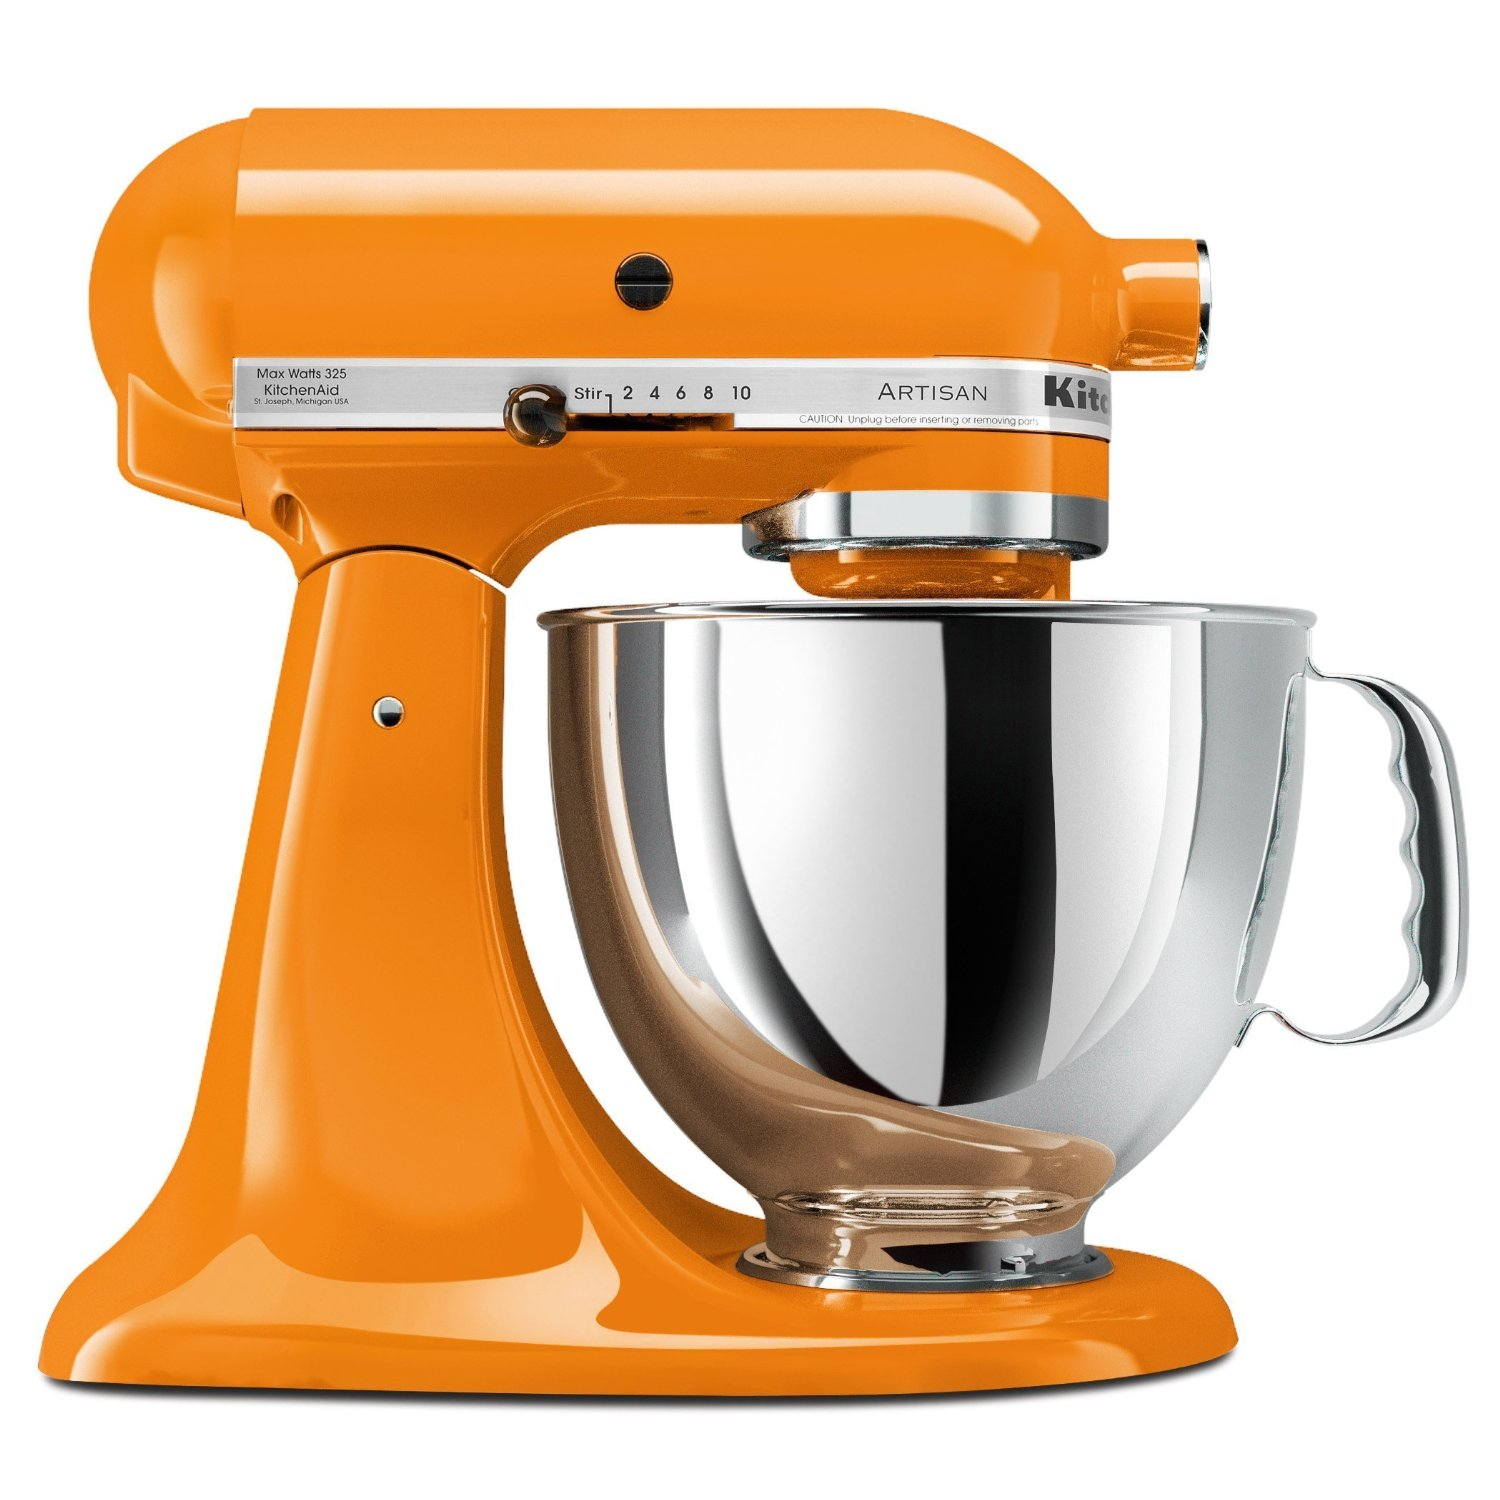 Kitchenaid accessories photo - 2